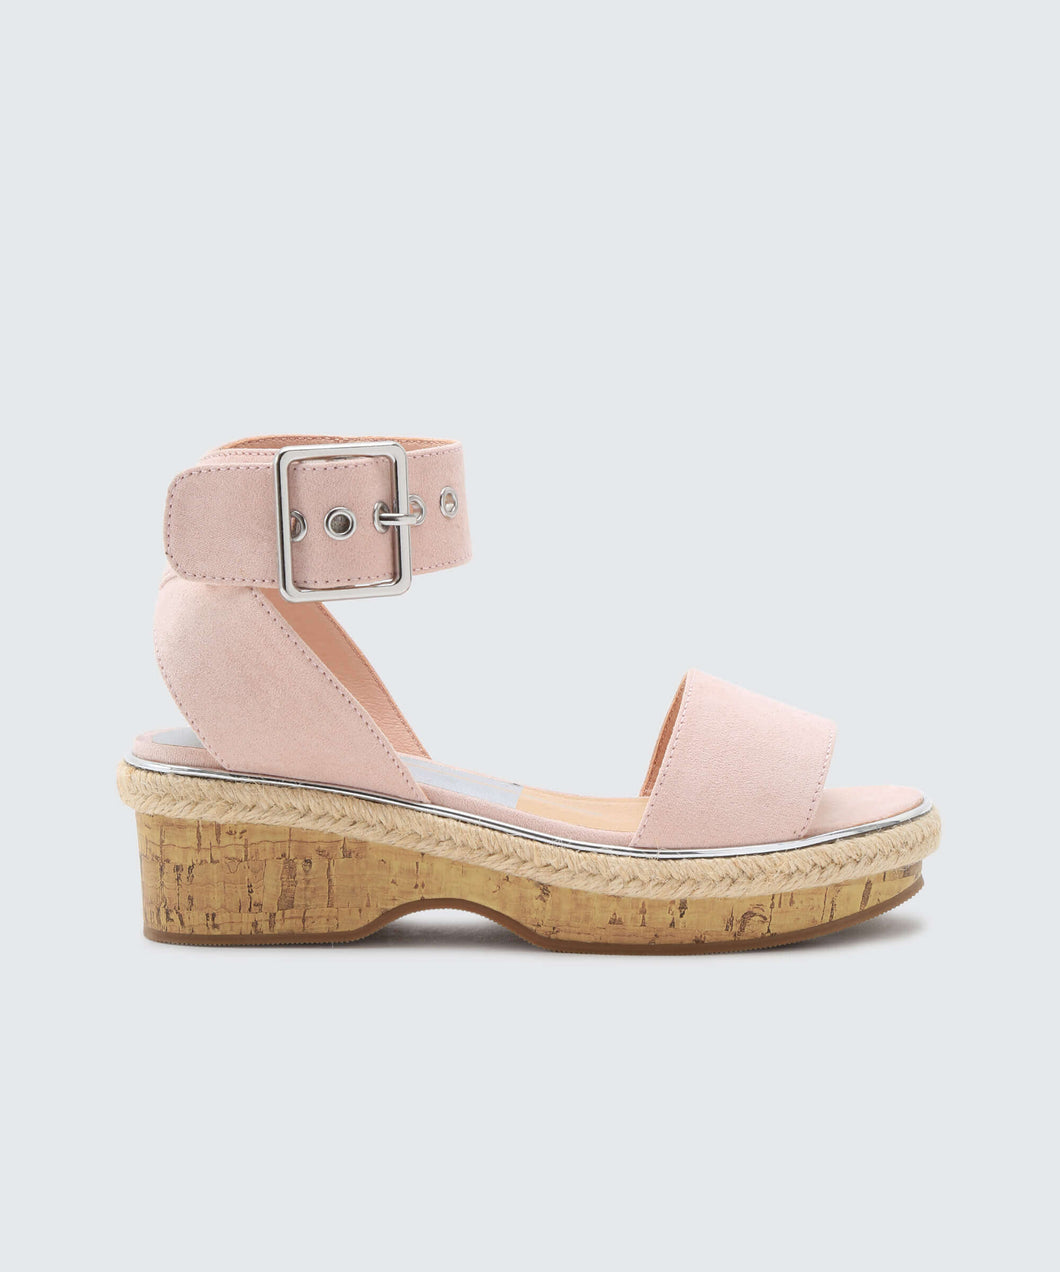 ADRIEL WEDGES BLUSH -   Dolce Vita